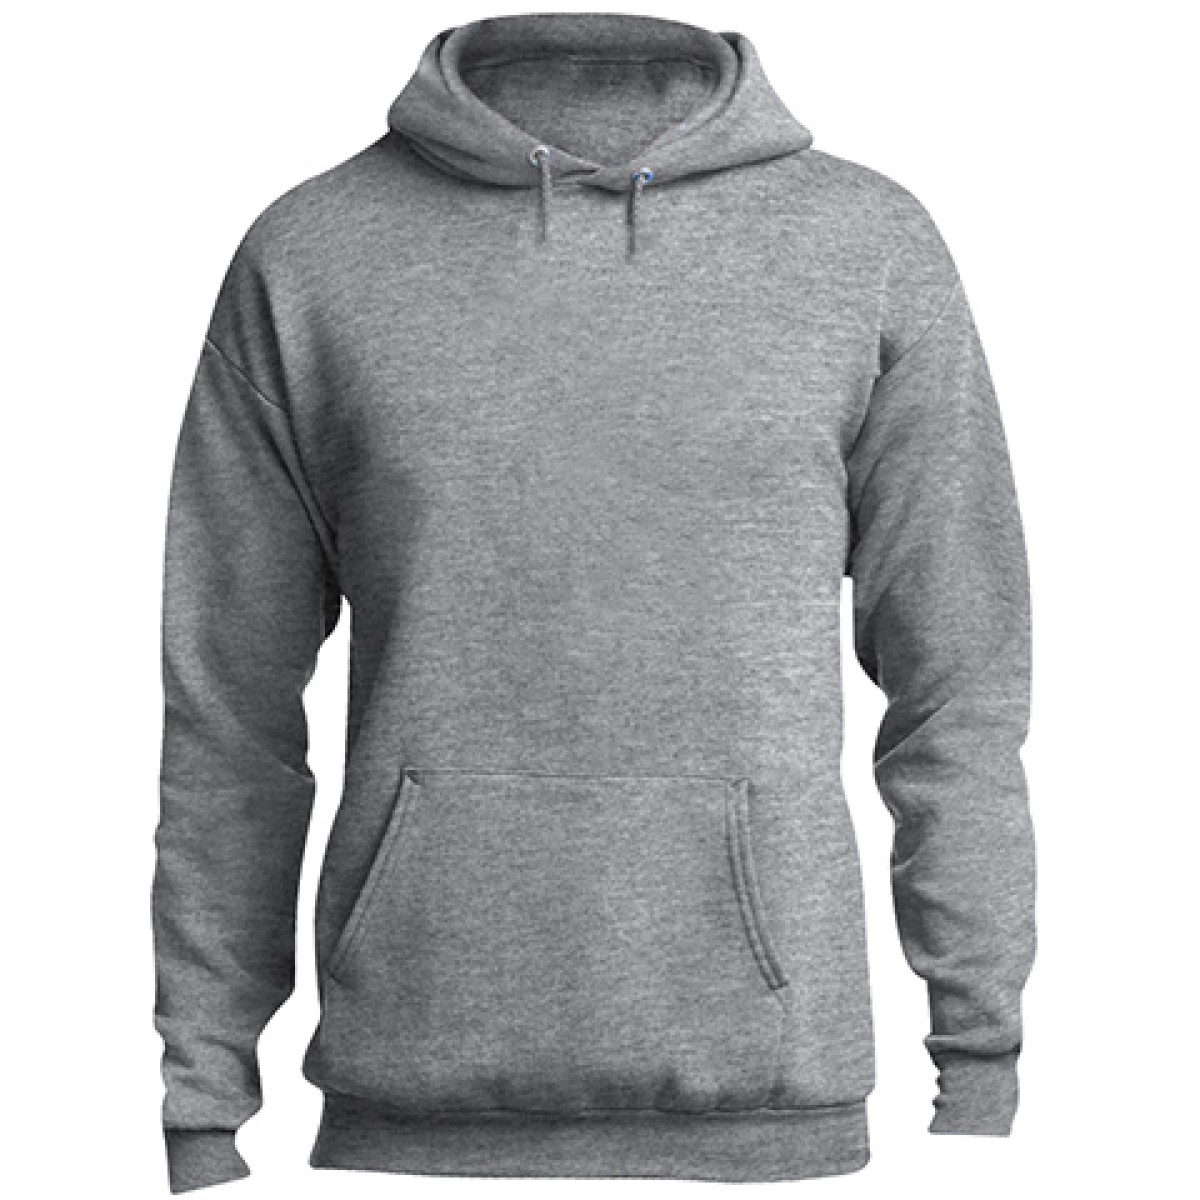 Classic Pullover Hooded Sweatshirt-Athletic Heather-4XL